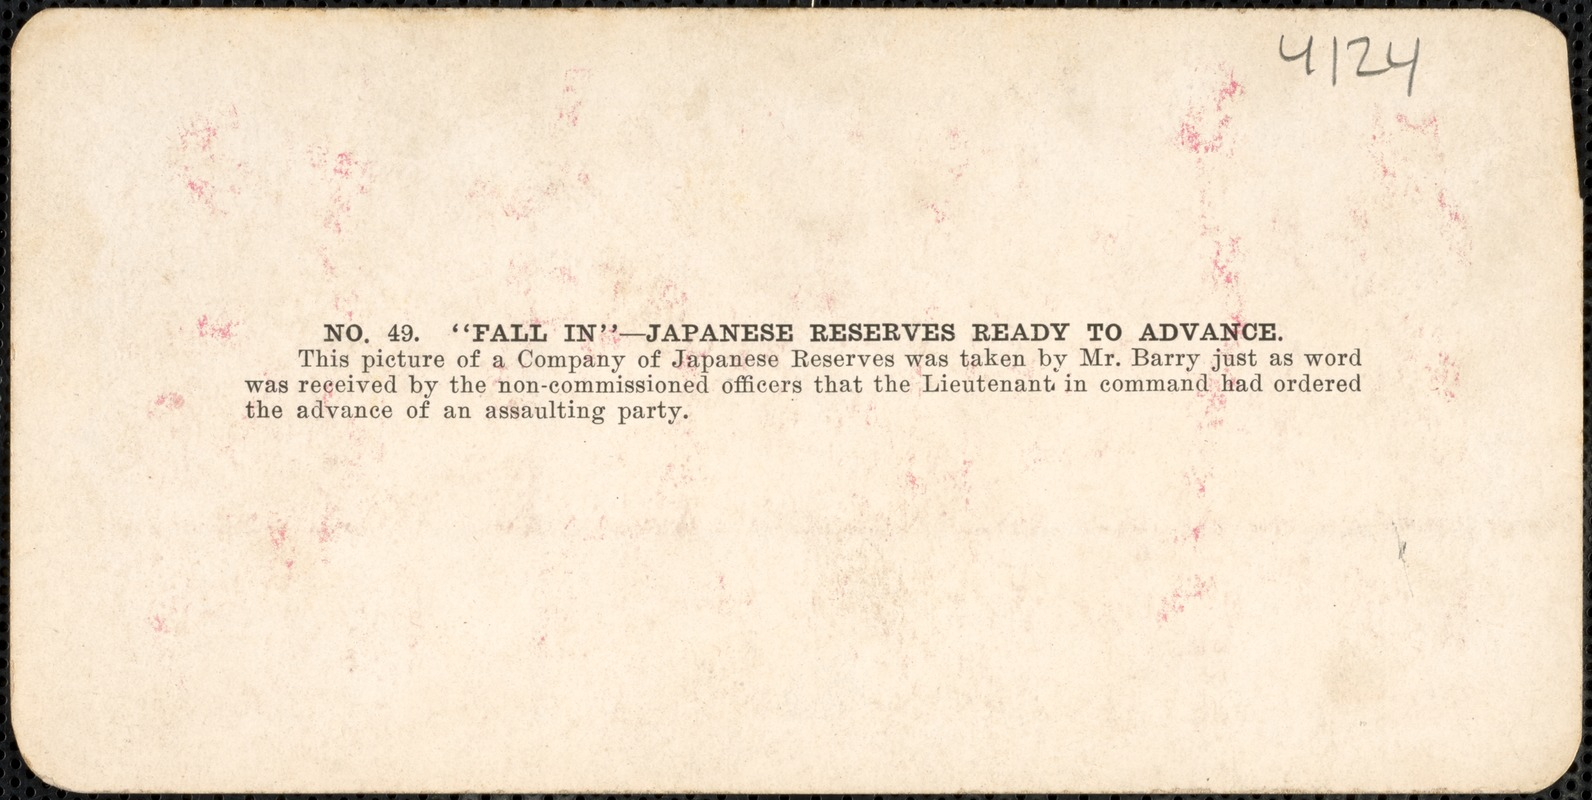 """""""Fall in"""" -Japanese reserves ready to advance"""